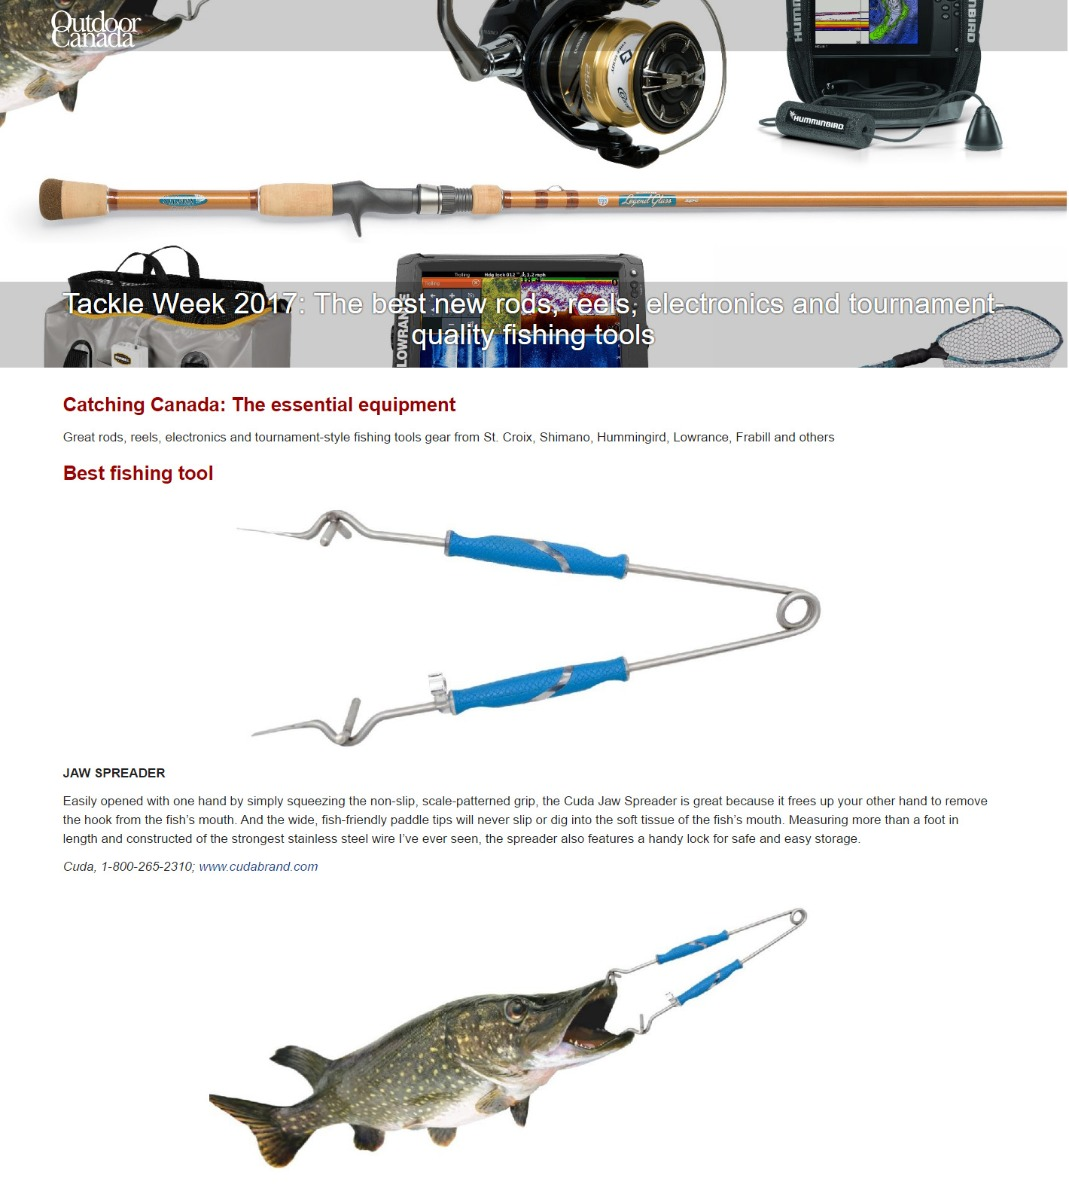 Best fishing tool - Featured in outdoorcanada.ca Tackle Week 2017